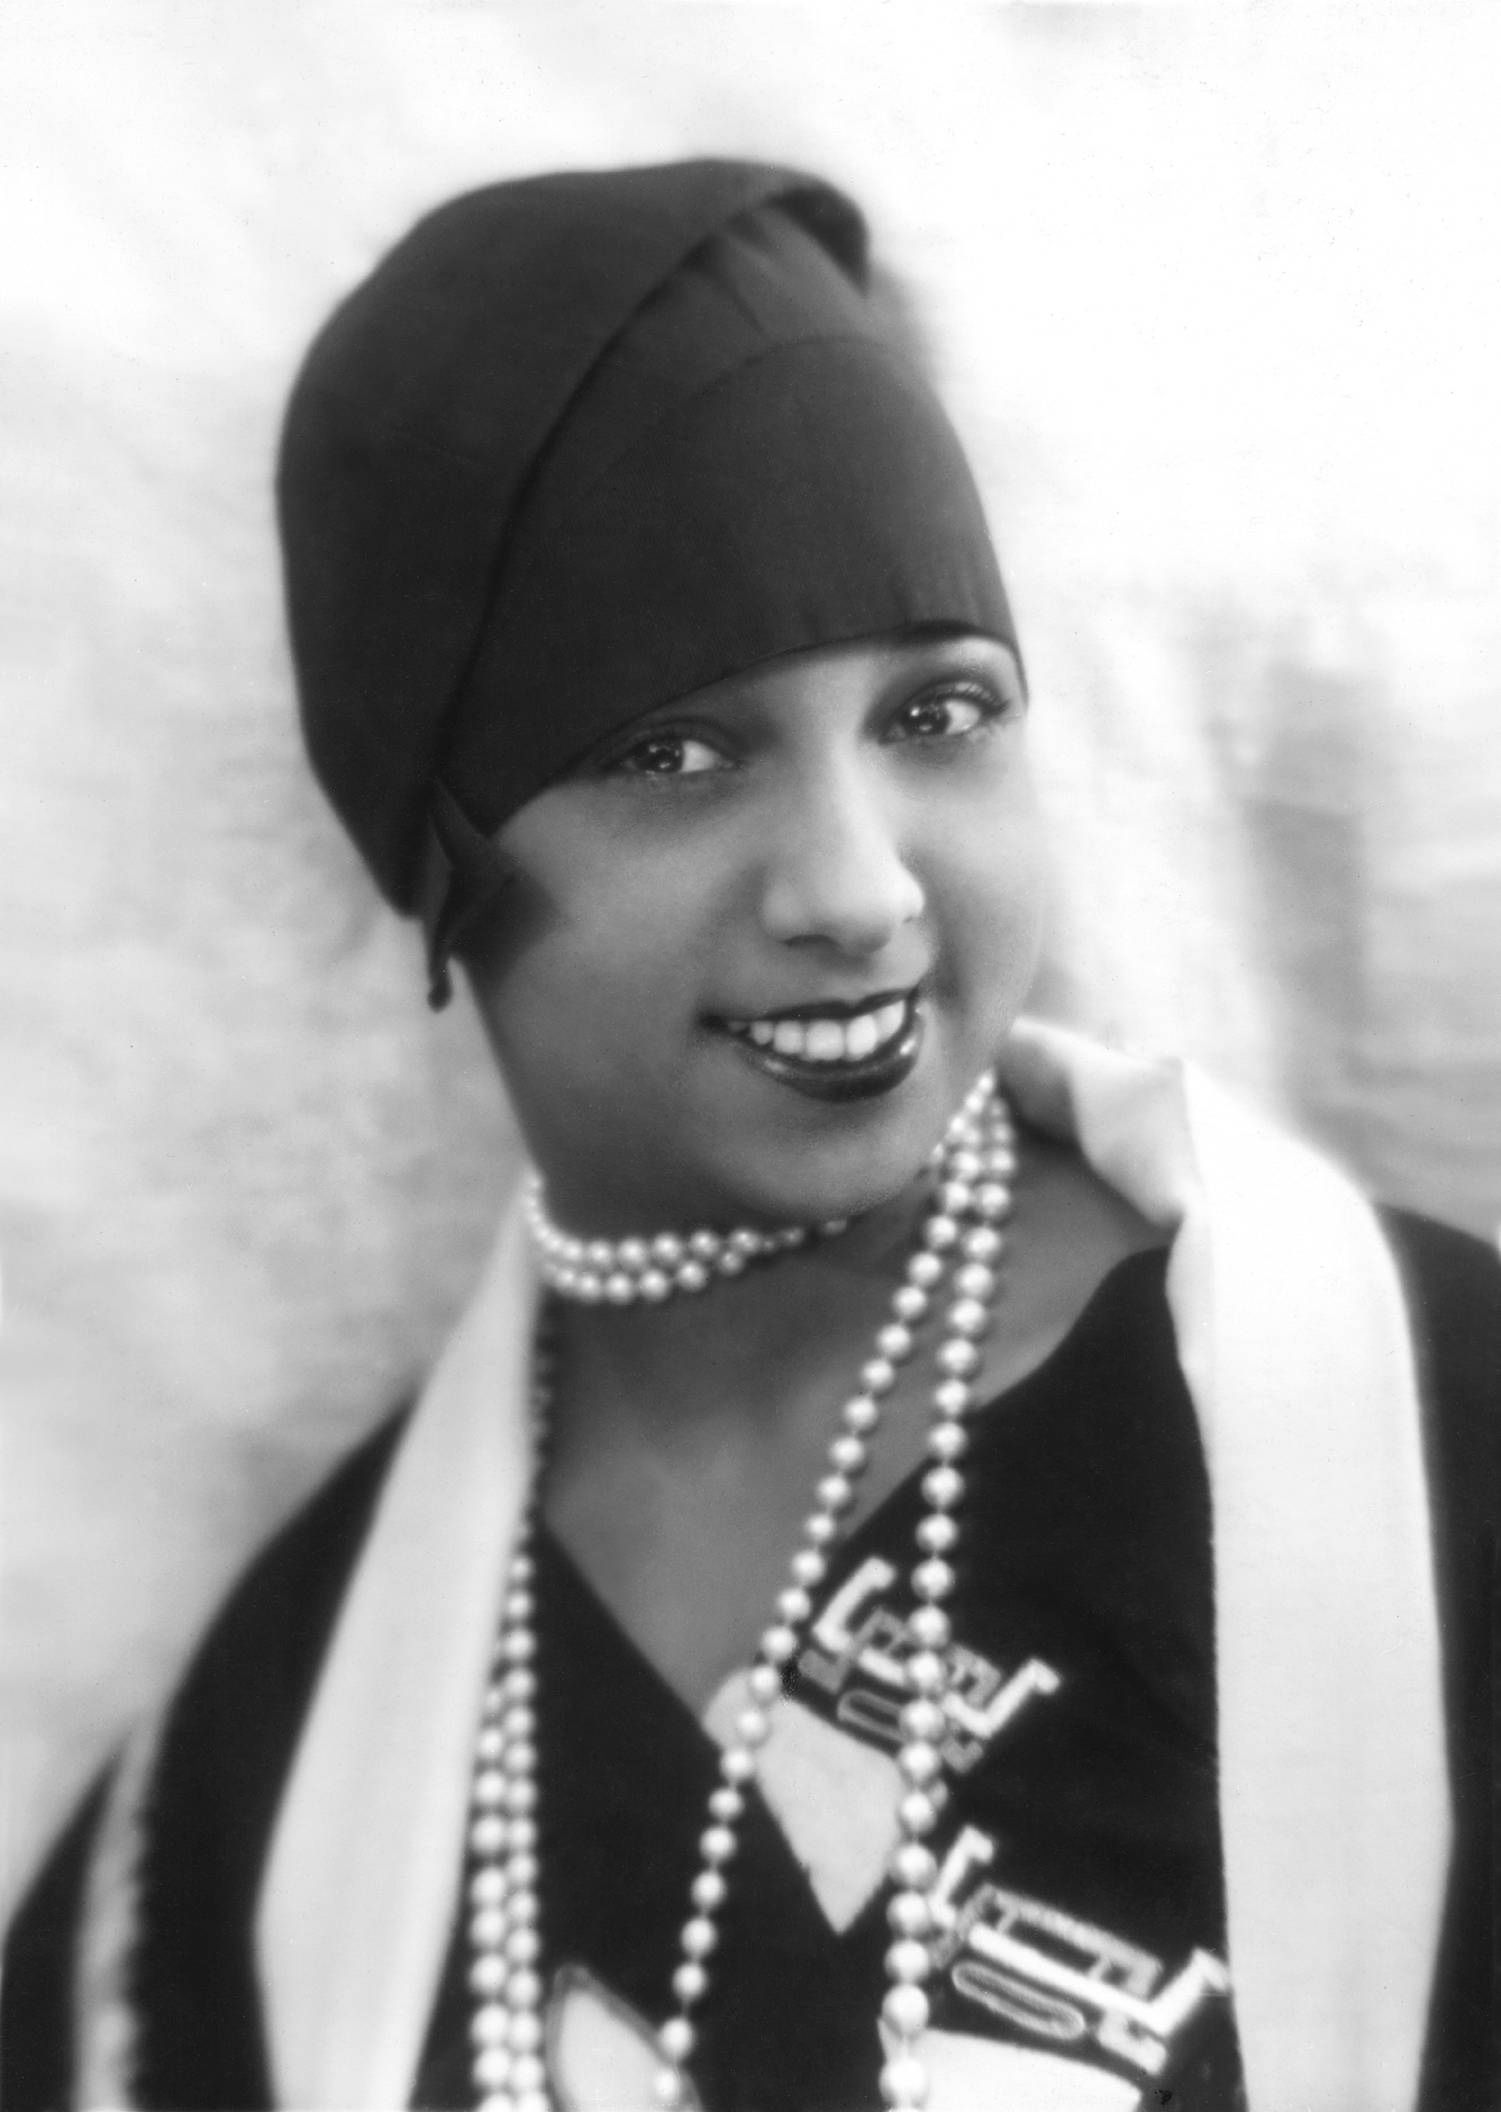 3e3c74a9e5b6 Josephine Baker was one of the most famous entertainers/fashion icons of  her time. She was the talk of Paris - not only for her